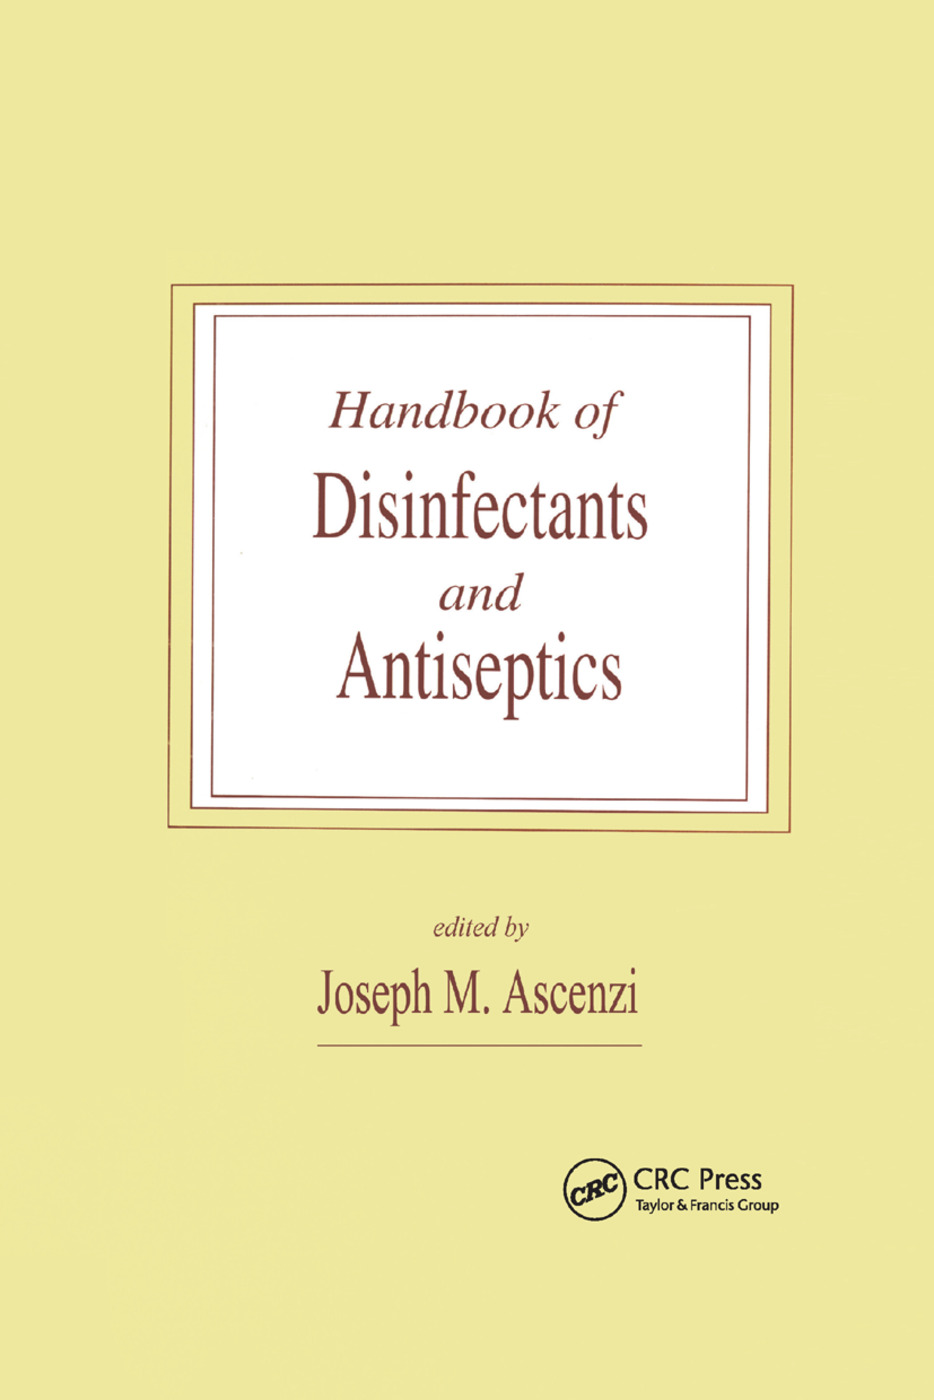 Handbook of Disinfectants and Antiseptics: 1st Edition (Paperback) book cover